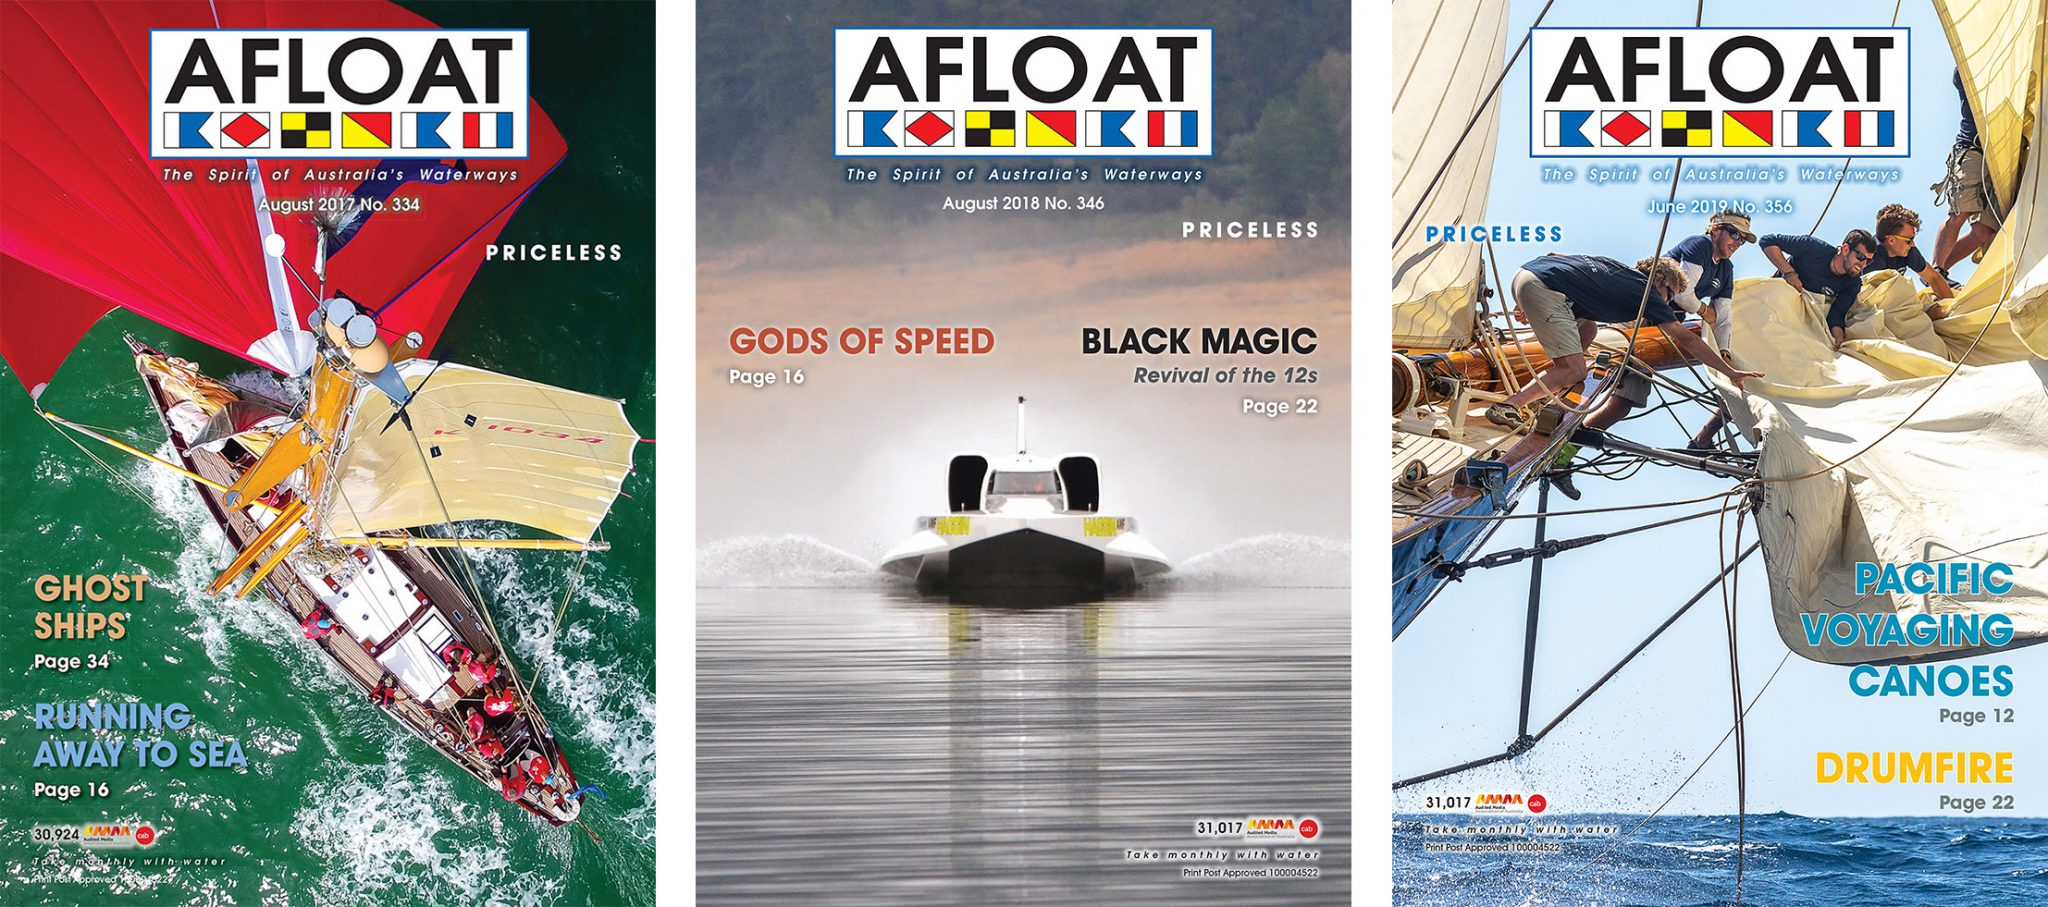 AFLOAT Magazine Covers